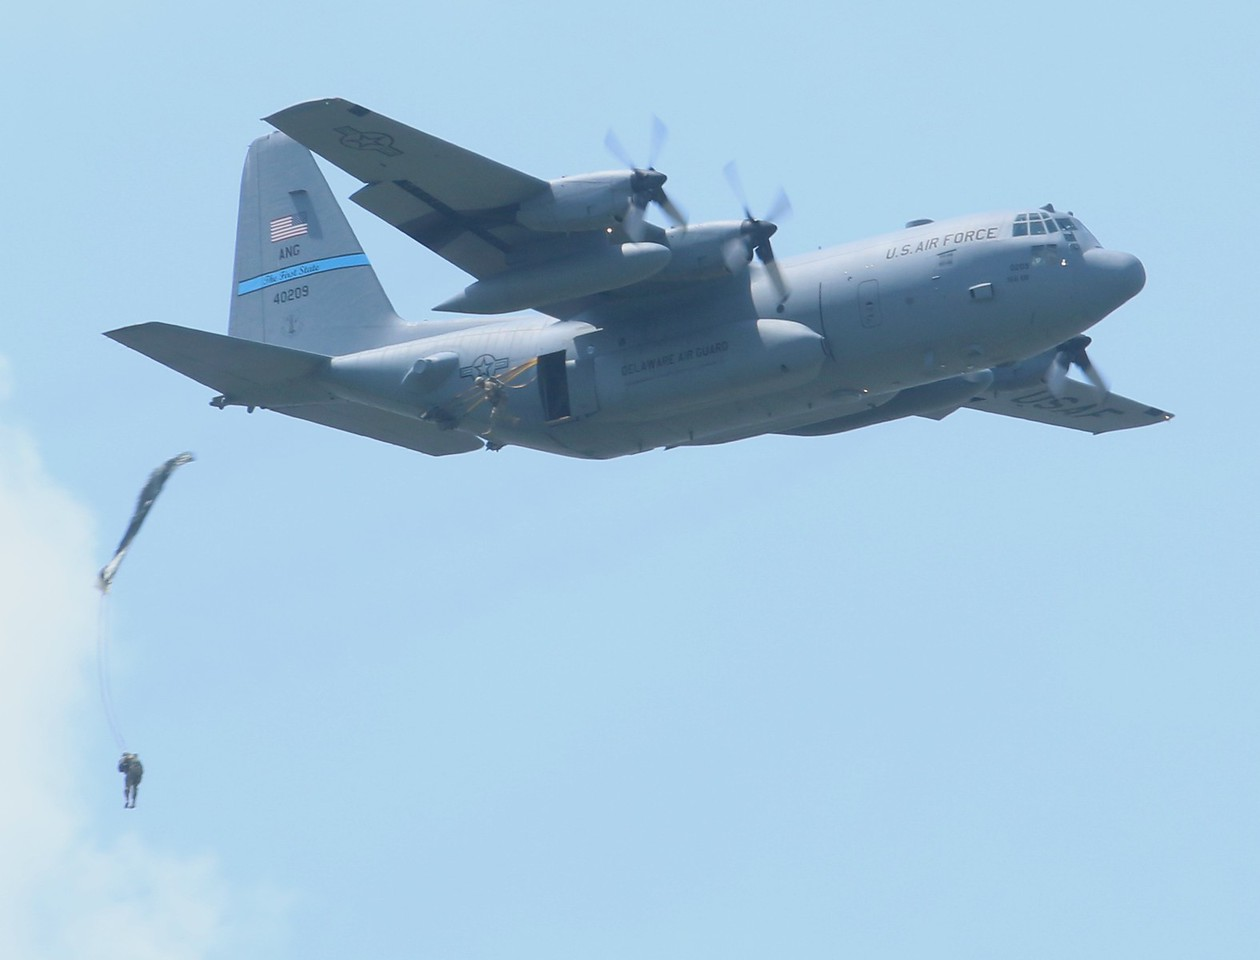 HUSKY01 Delaware ANG C-130H [84-0209] deploying paratroopers